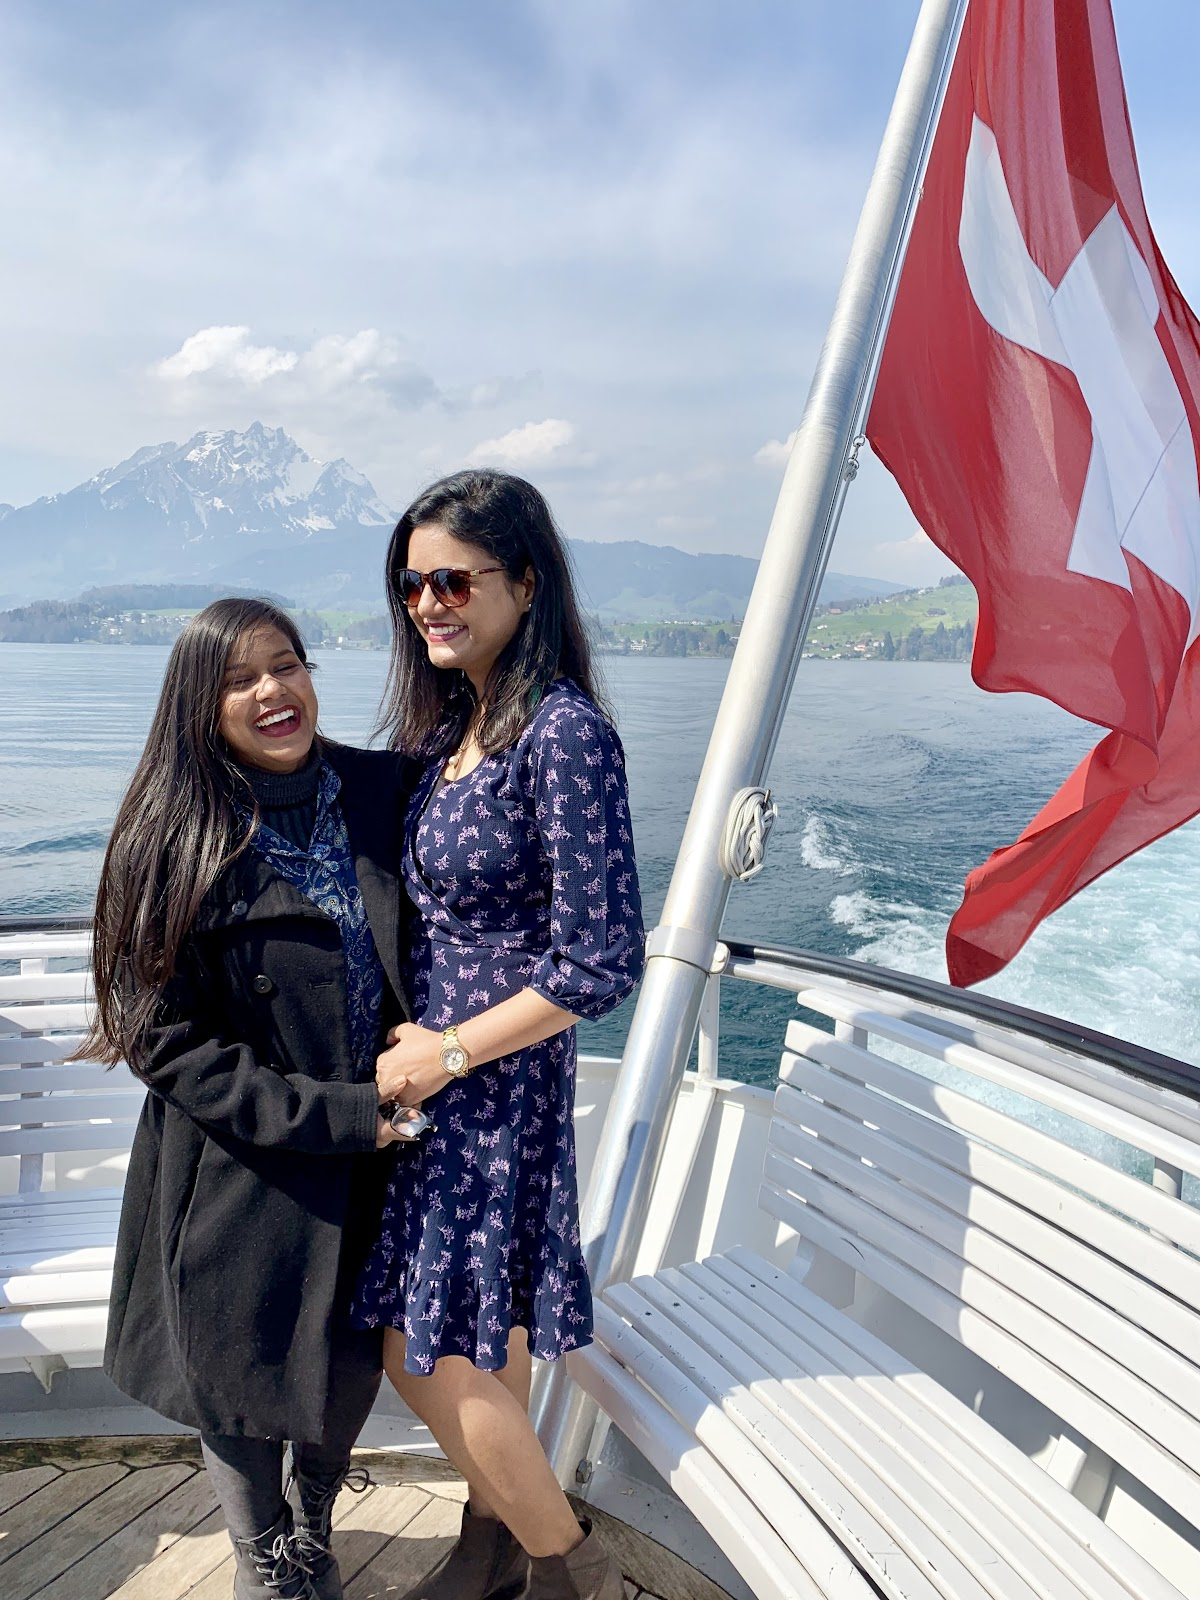 Ferry on Lake Lucerne - Guide to visiting Rigi Kulm